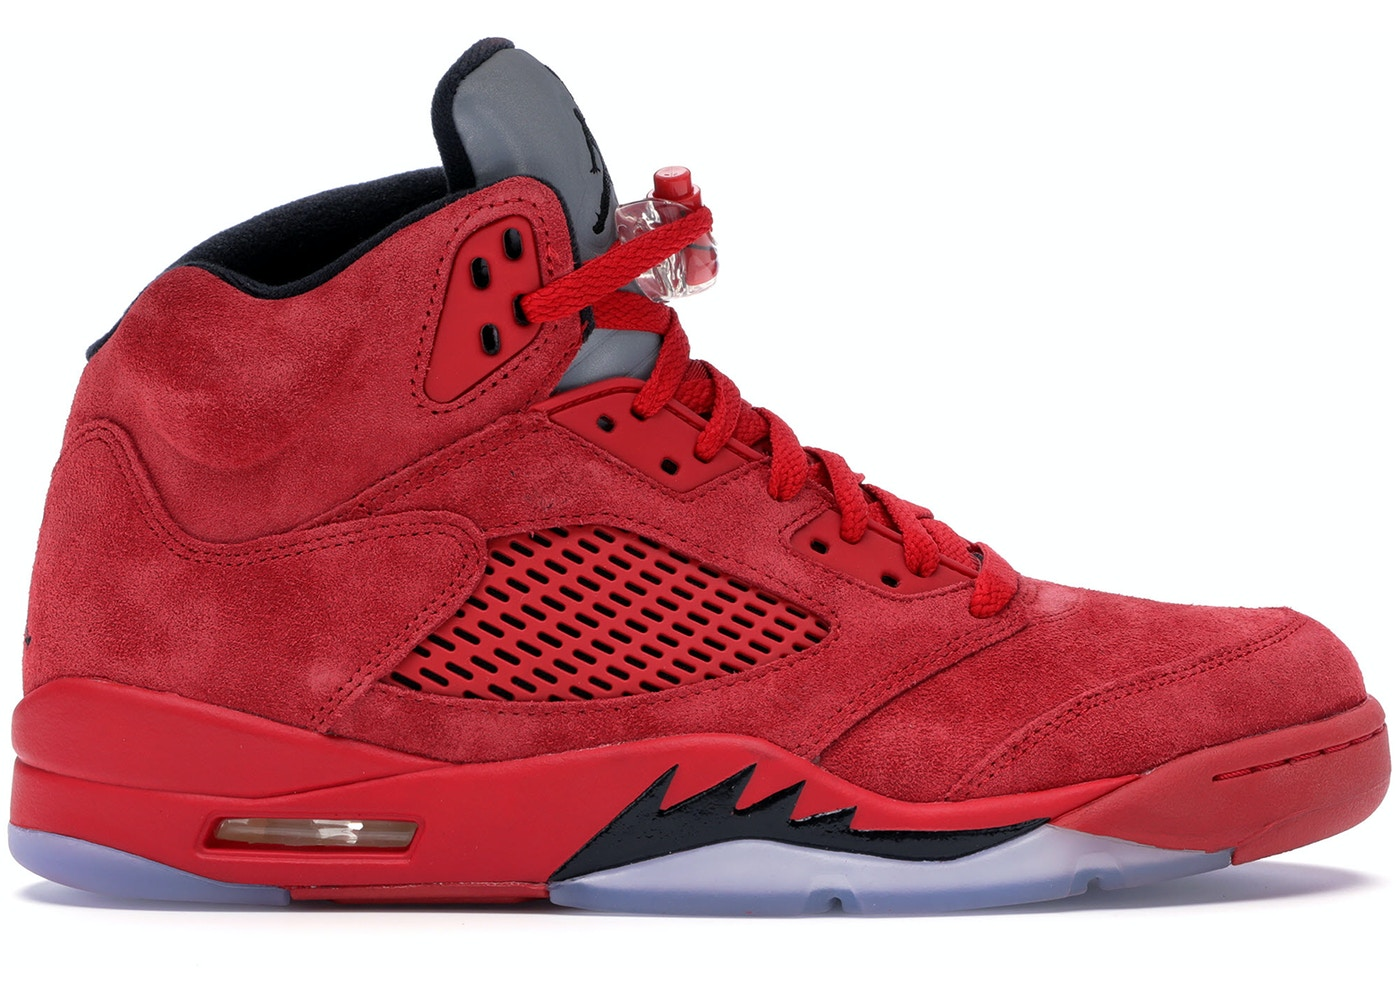 4a29750b97bf Jordan 5 Retro Red Suede - 136027-602